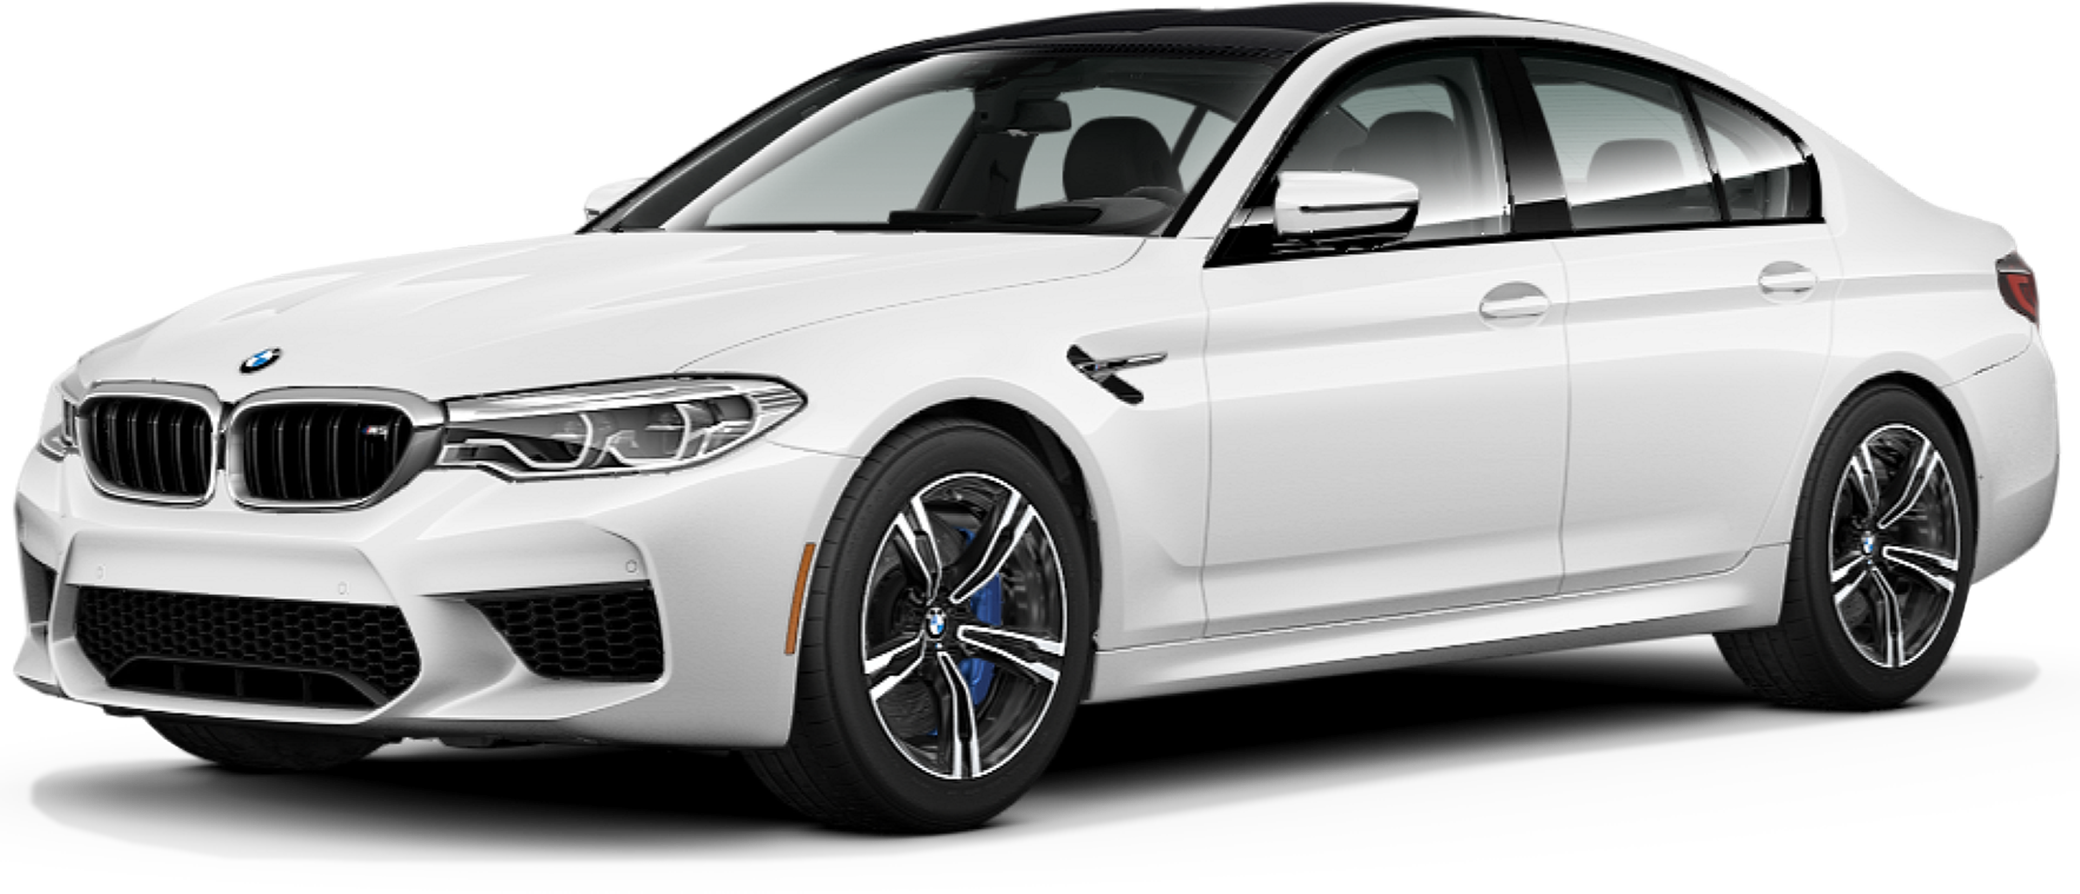 2020 BMW M5 Incentives, Specials & Offers in Towson MD